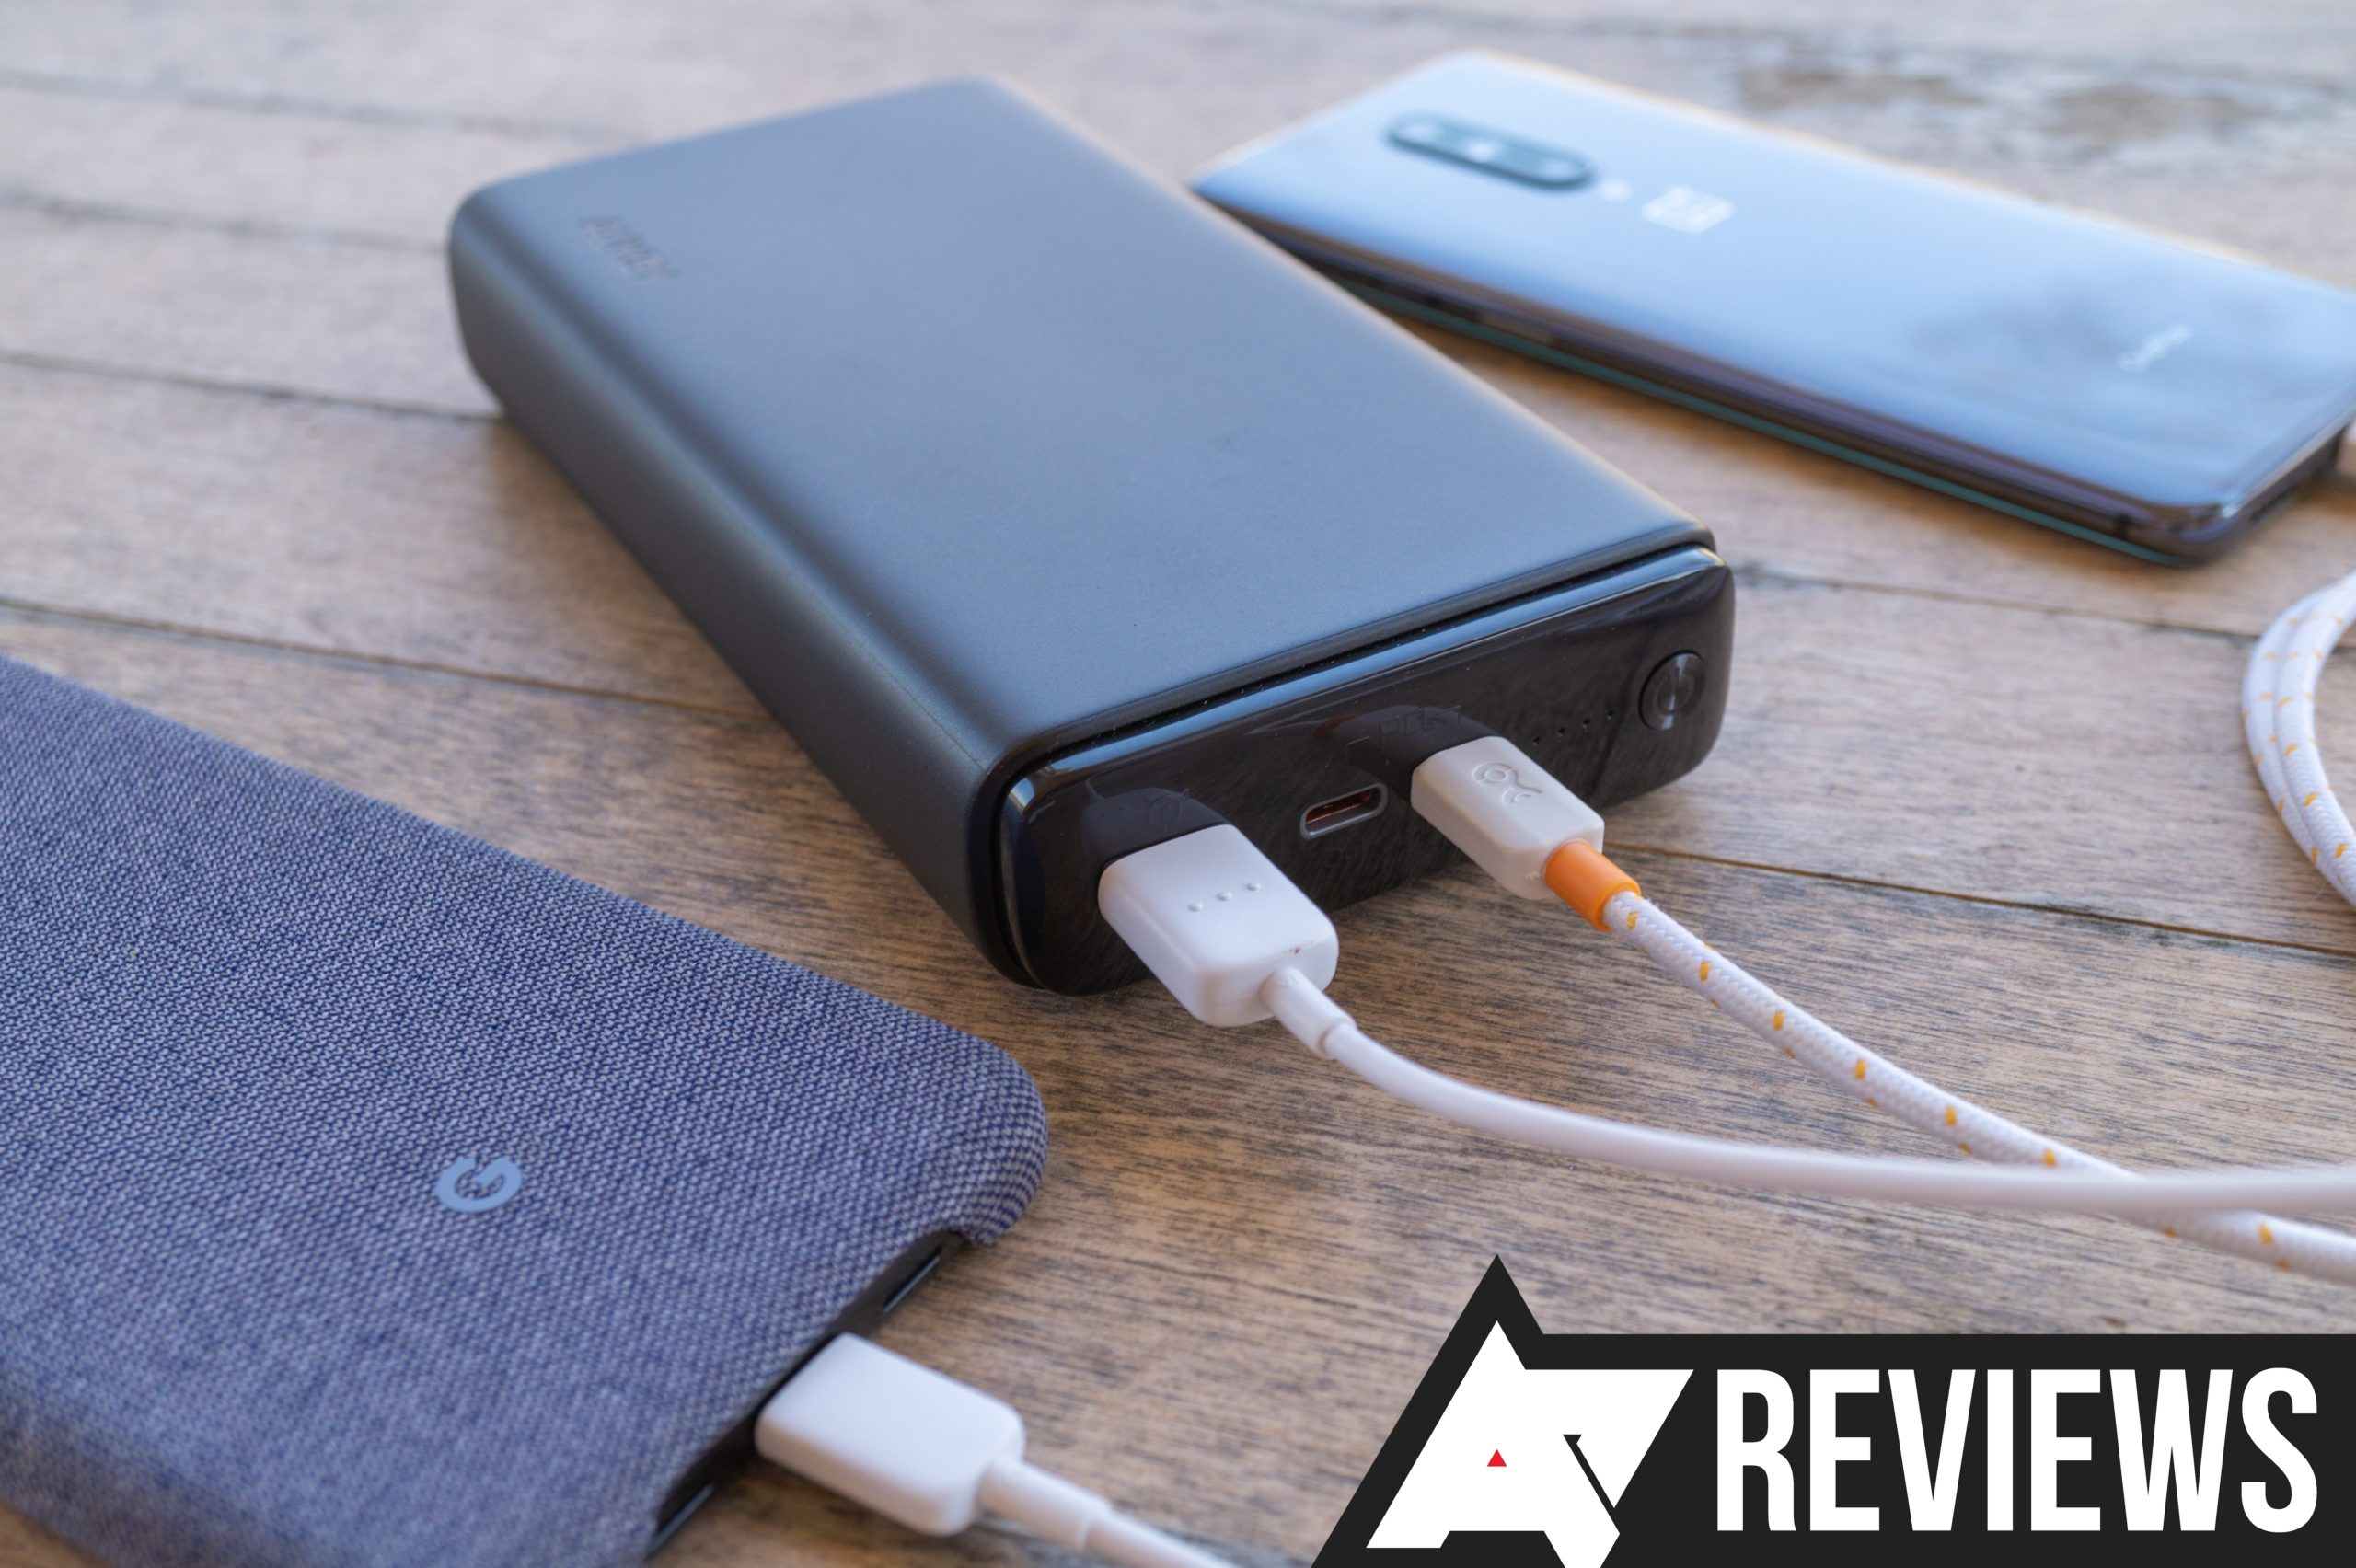 Aukey Power Bank 26800mAh review: A big battery that can quickly charge everything